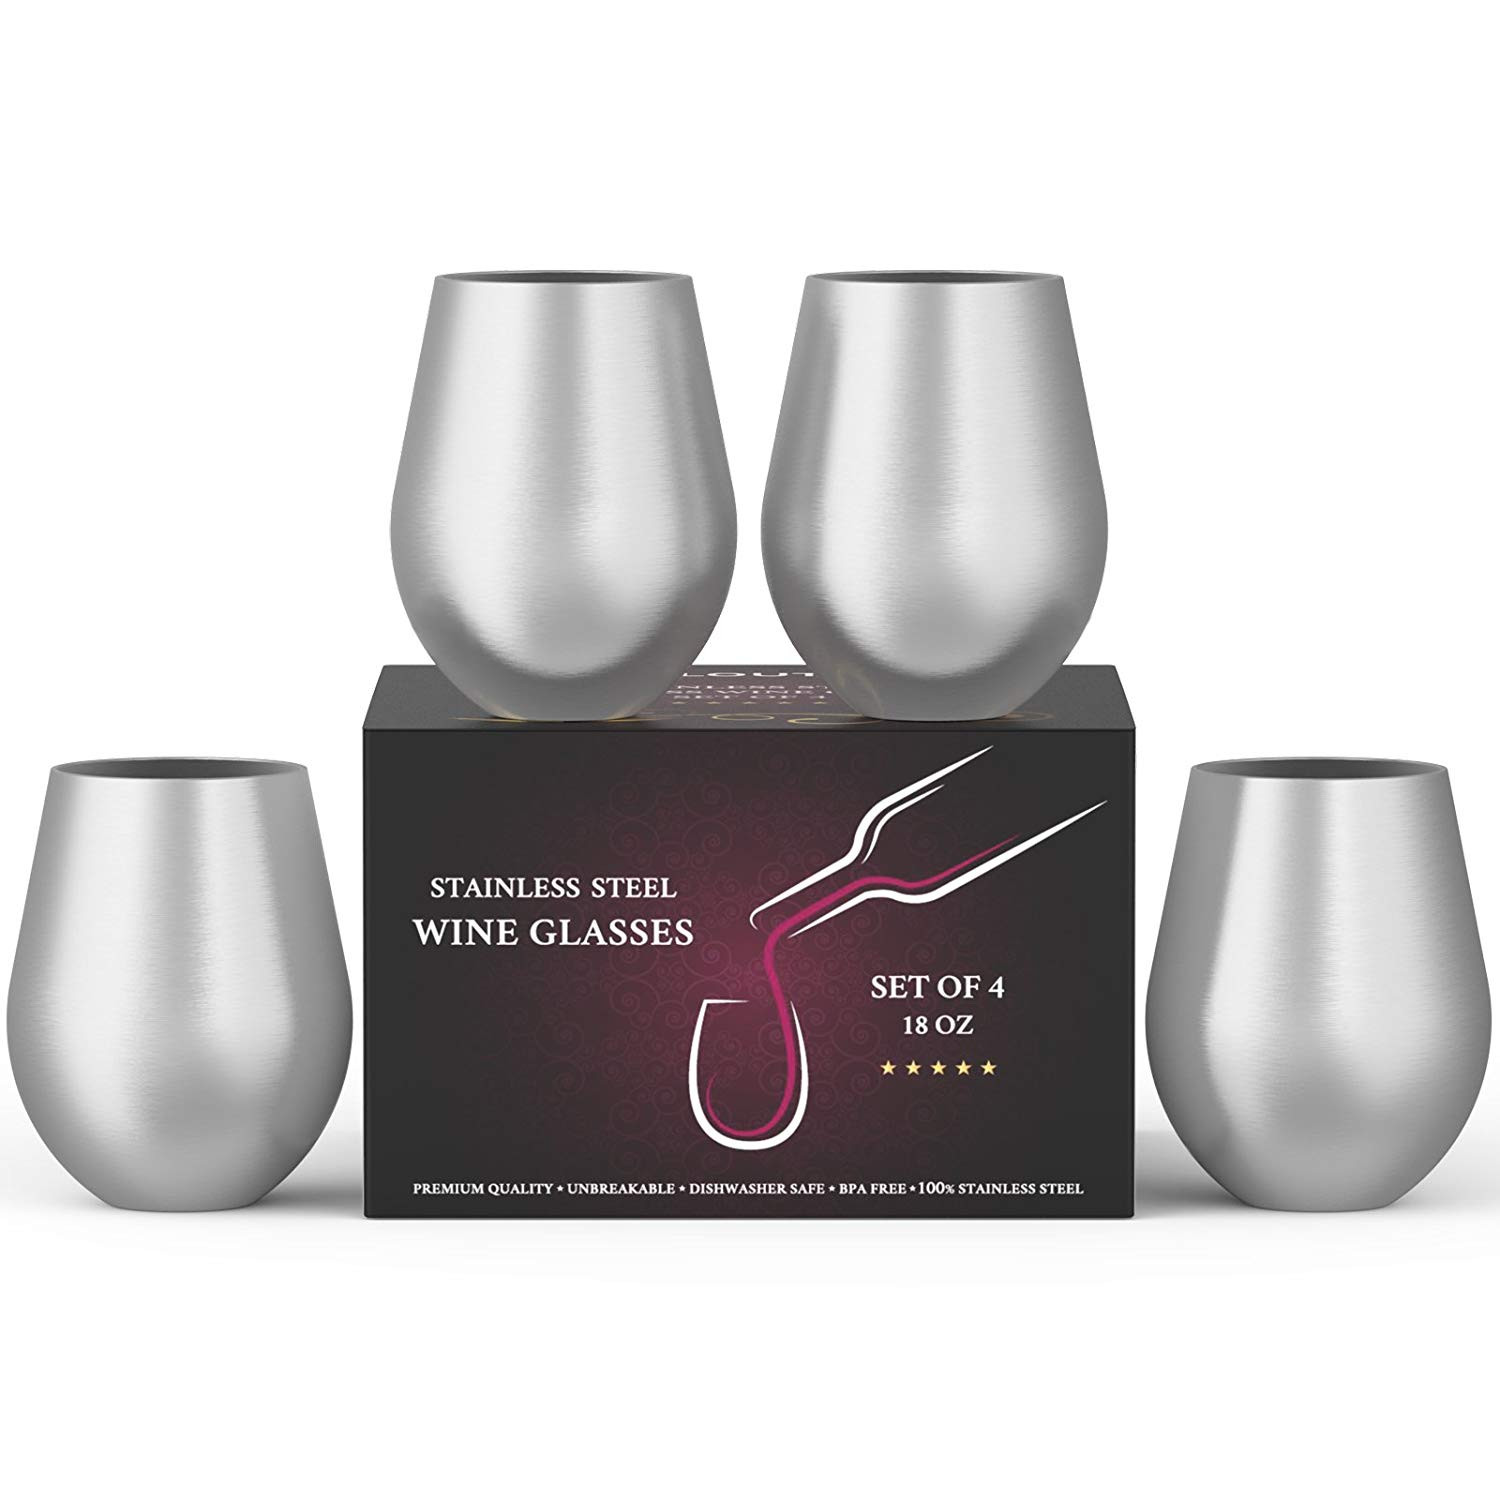 extra large crystal vase of amazon com stainless steel wine stemless glasses set of 4 18 oz inside amazon com stainless steel wine stemless glasses set of 4 18 oz metal wine glasses 4 pack unbreakable dishwasher safe bpa free great for indoor